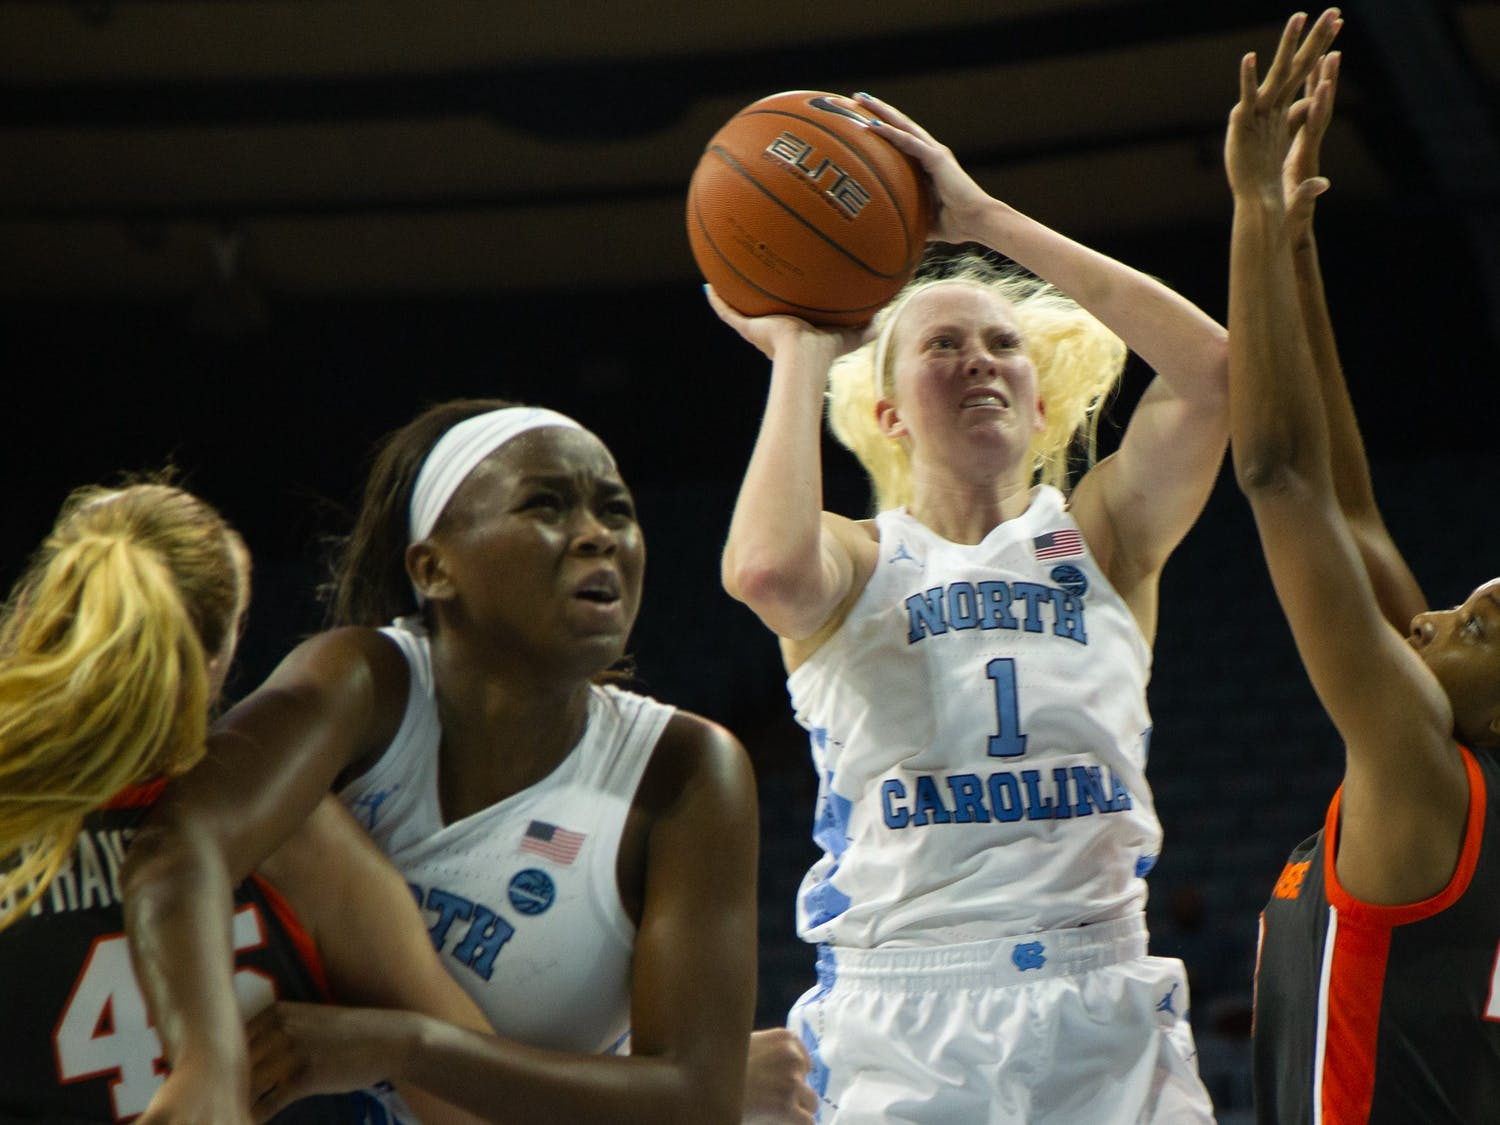 UNC senior guard Taylor Koenen (1) attempts a shot while Syracuse defends during a game in Carmichael Arena on Thursday, Feb. 13, 2020. The Orange beat the Tar Heels 74-56.